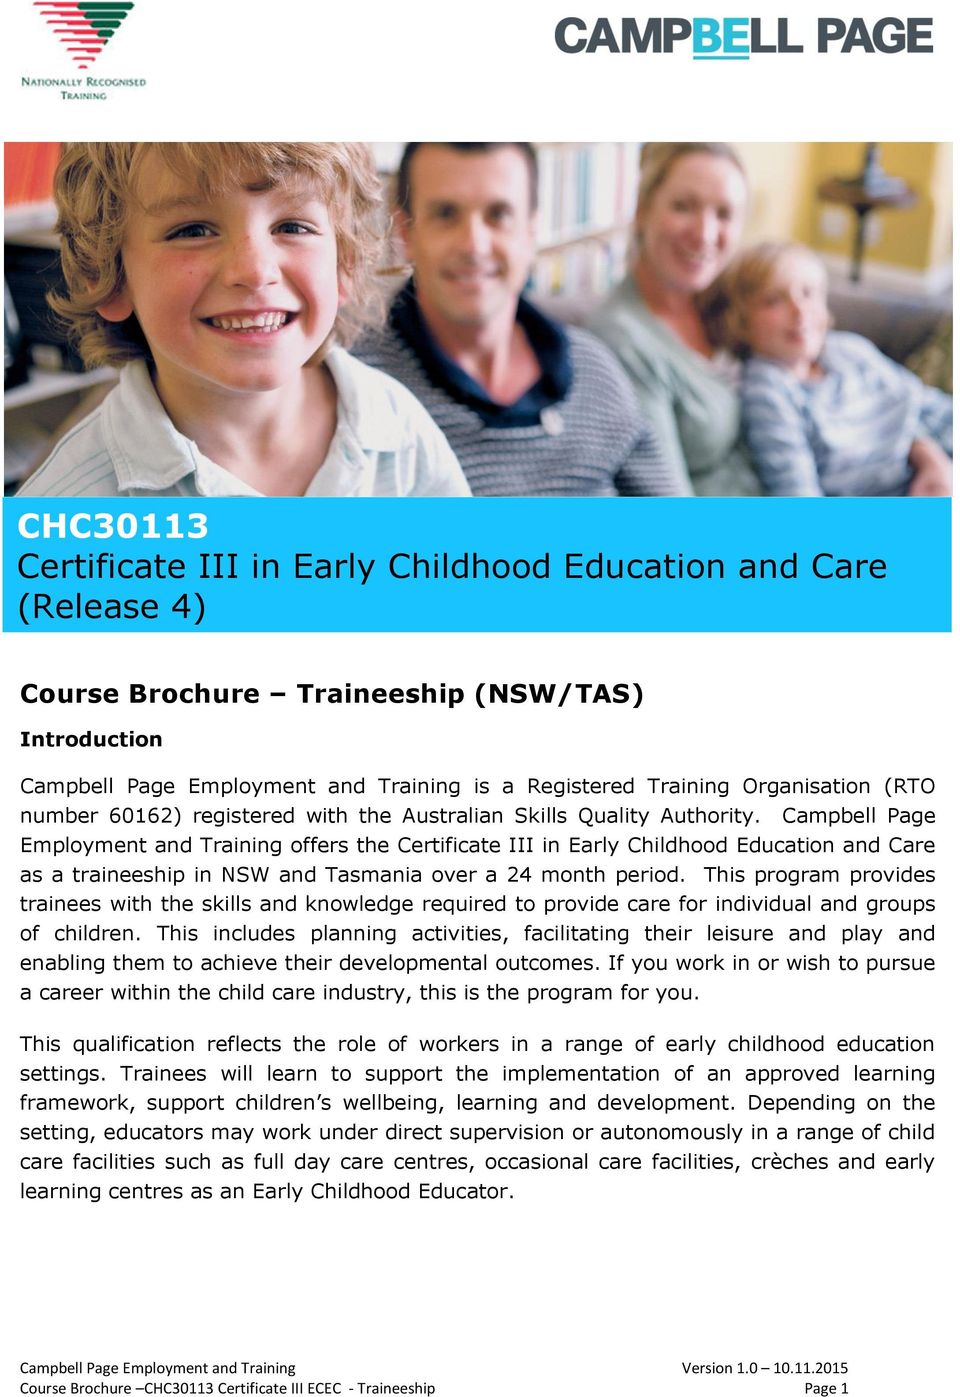 Campbell Page Employment and Training offers the Certificate III in Early Childhood Education and Care as a traineeship in NSW and Tasmania over a 24 month period.